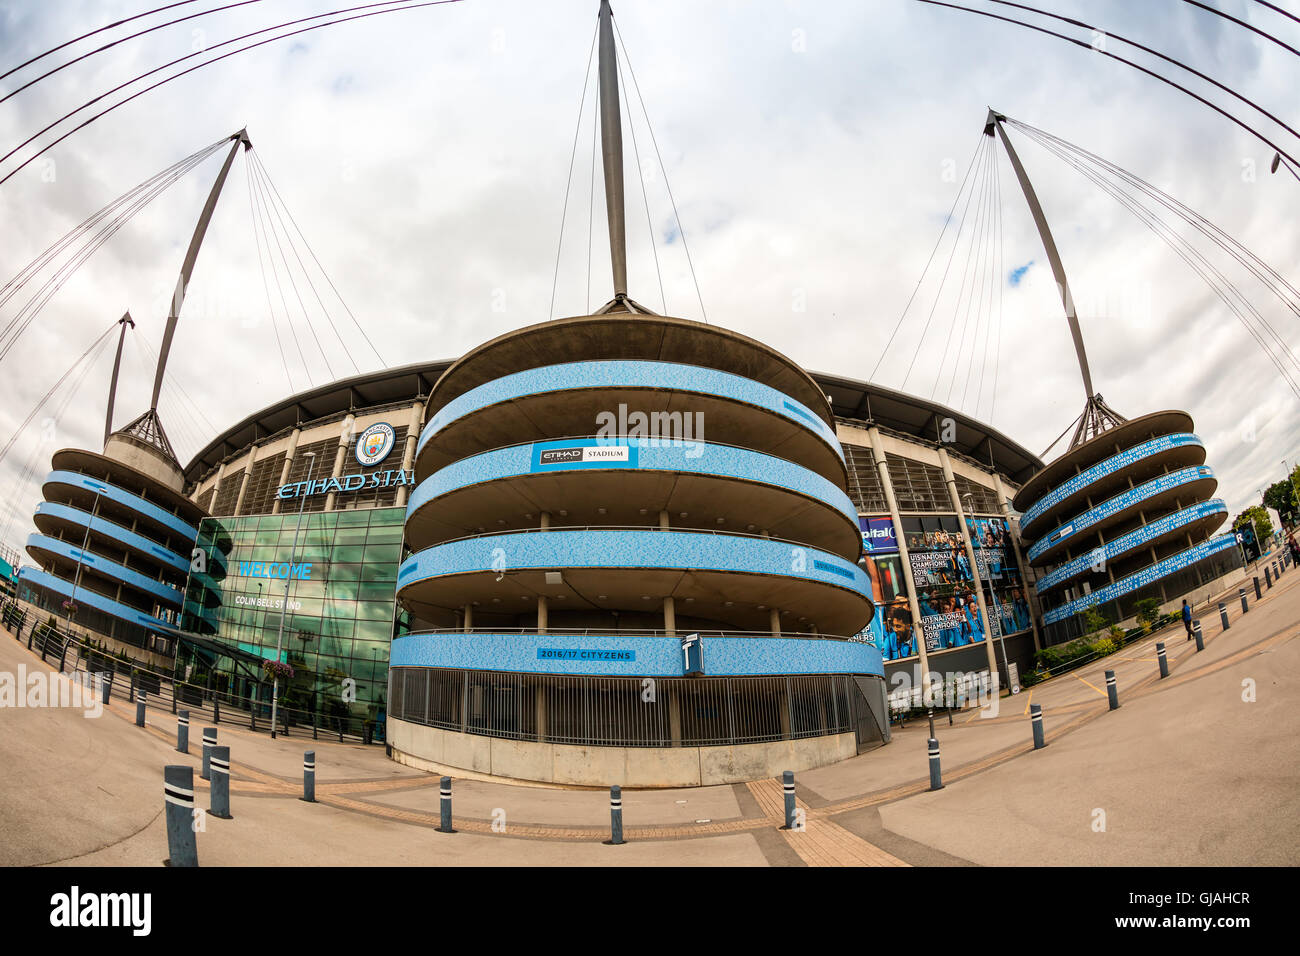 Etihad stadium is home to Manchester City English Premier League football club, one of the most successful clubs - Stock Image